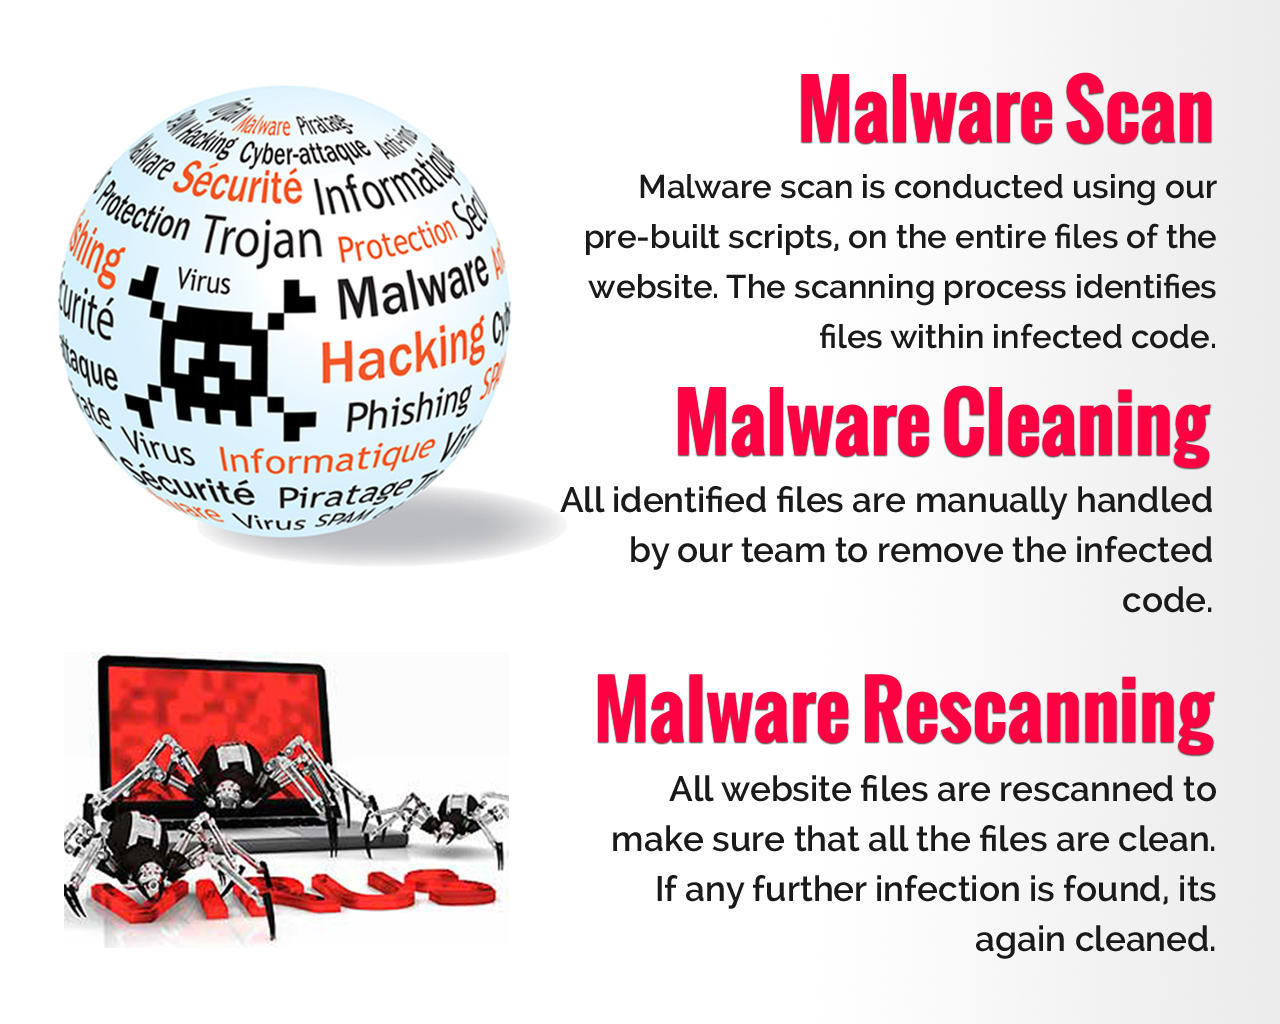 Server or Website Cleanup For Malware, Virus, Blacklisting by cWebConsultants - 80148